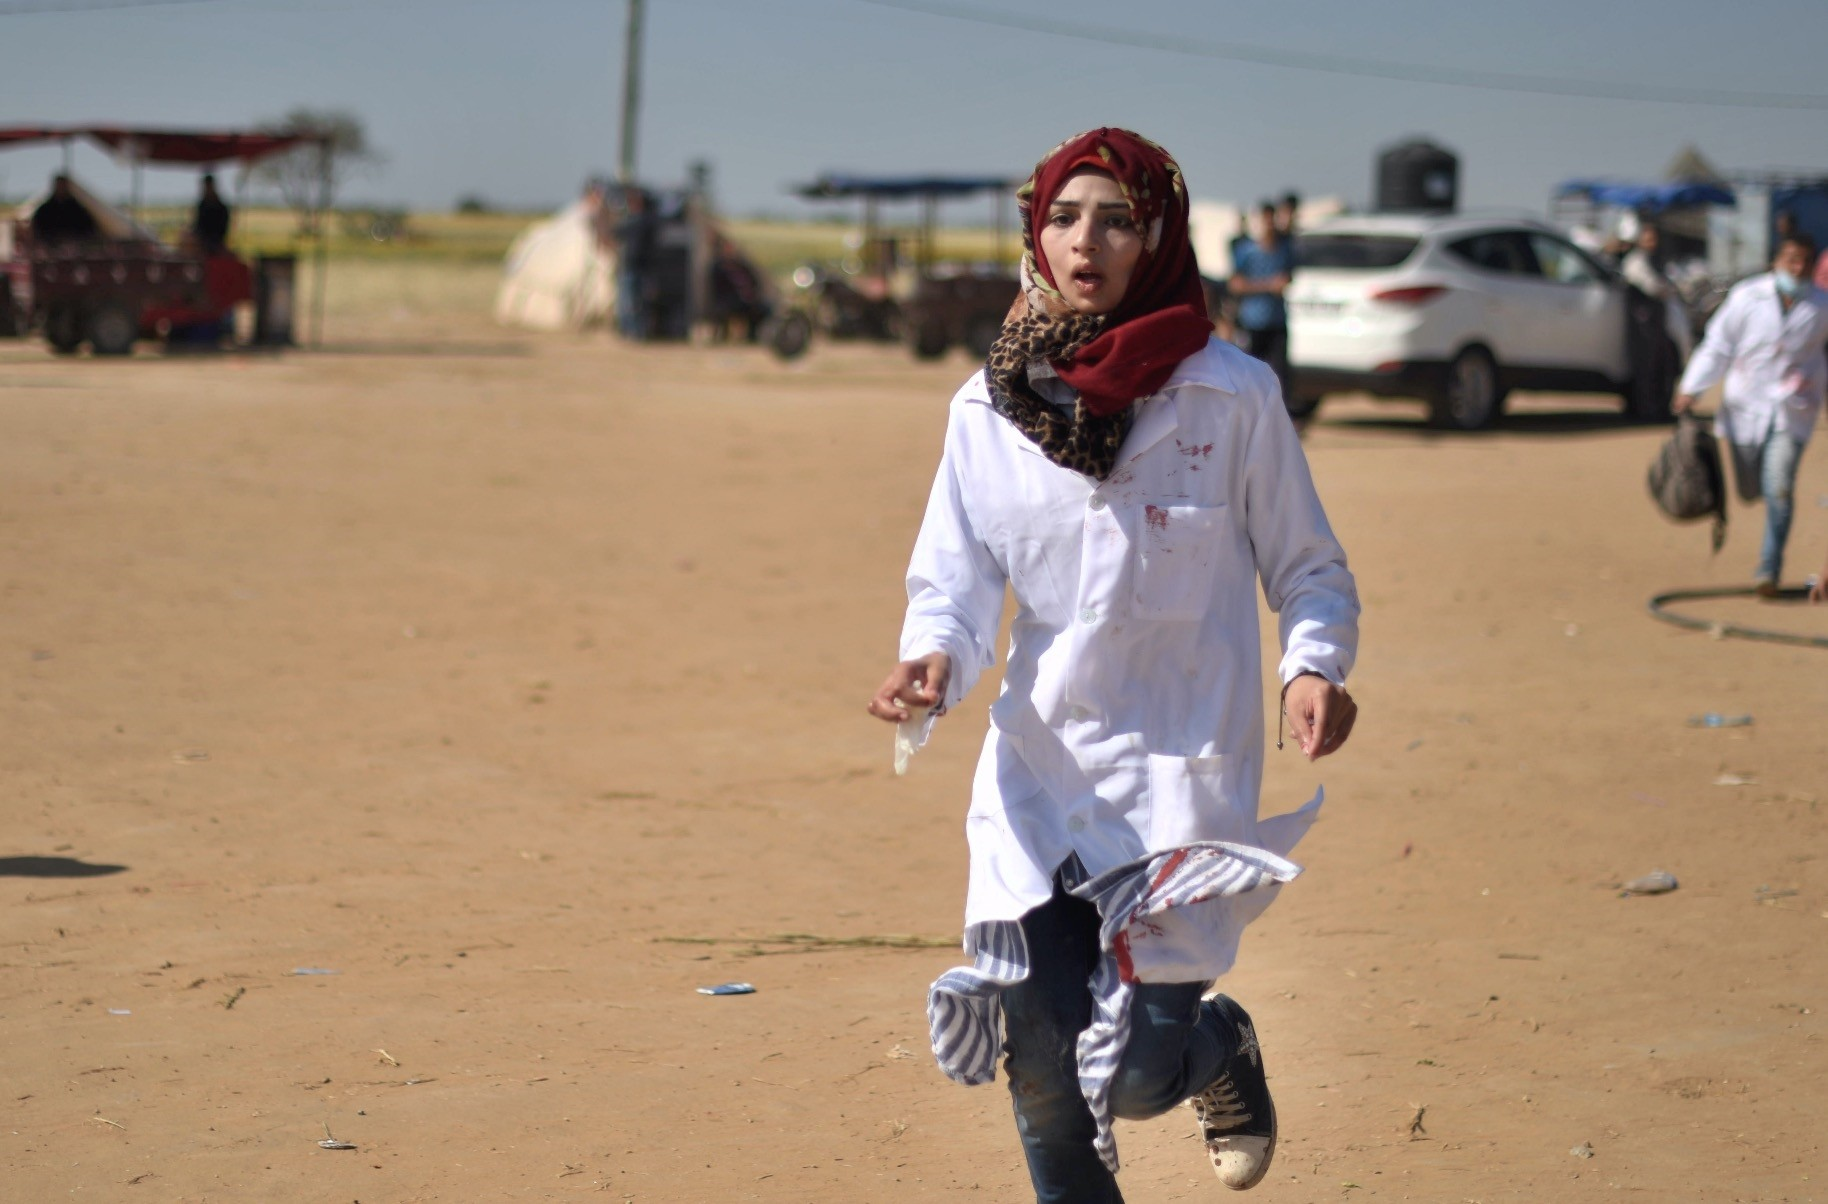 A 21-year old Palestinian medic, Razan al-Najjar was shot dead by Israeli forces as she ran to treat injured protesters at the border fence.